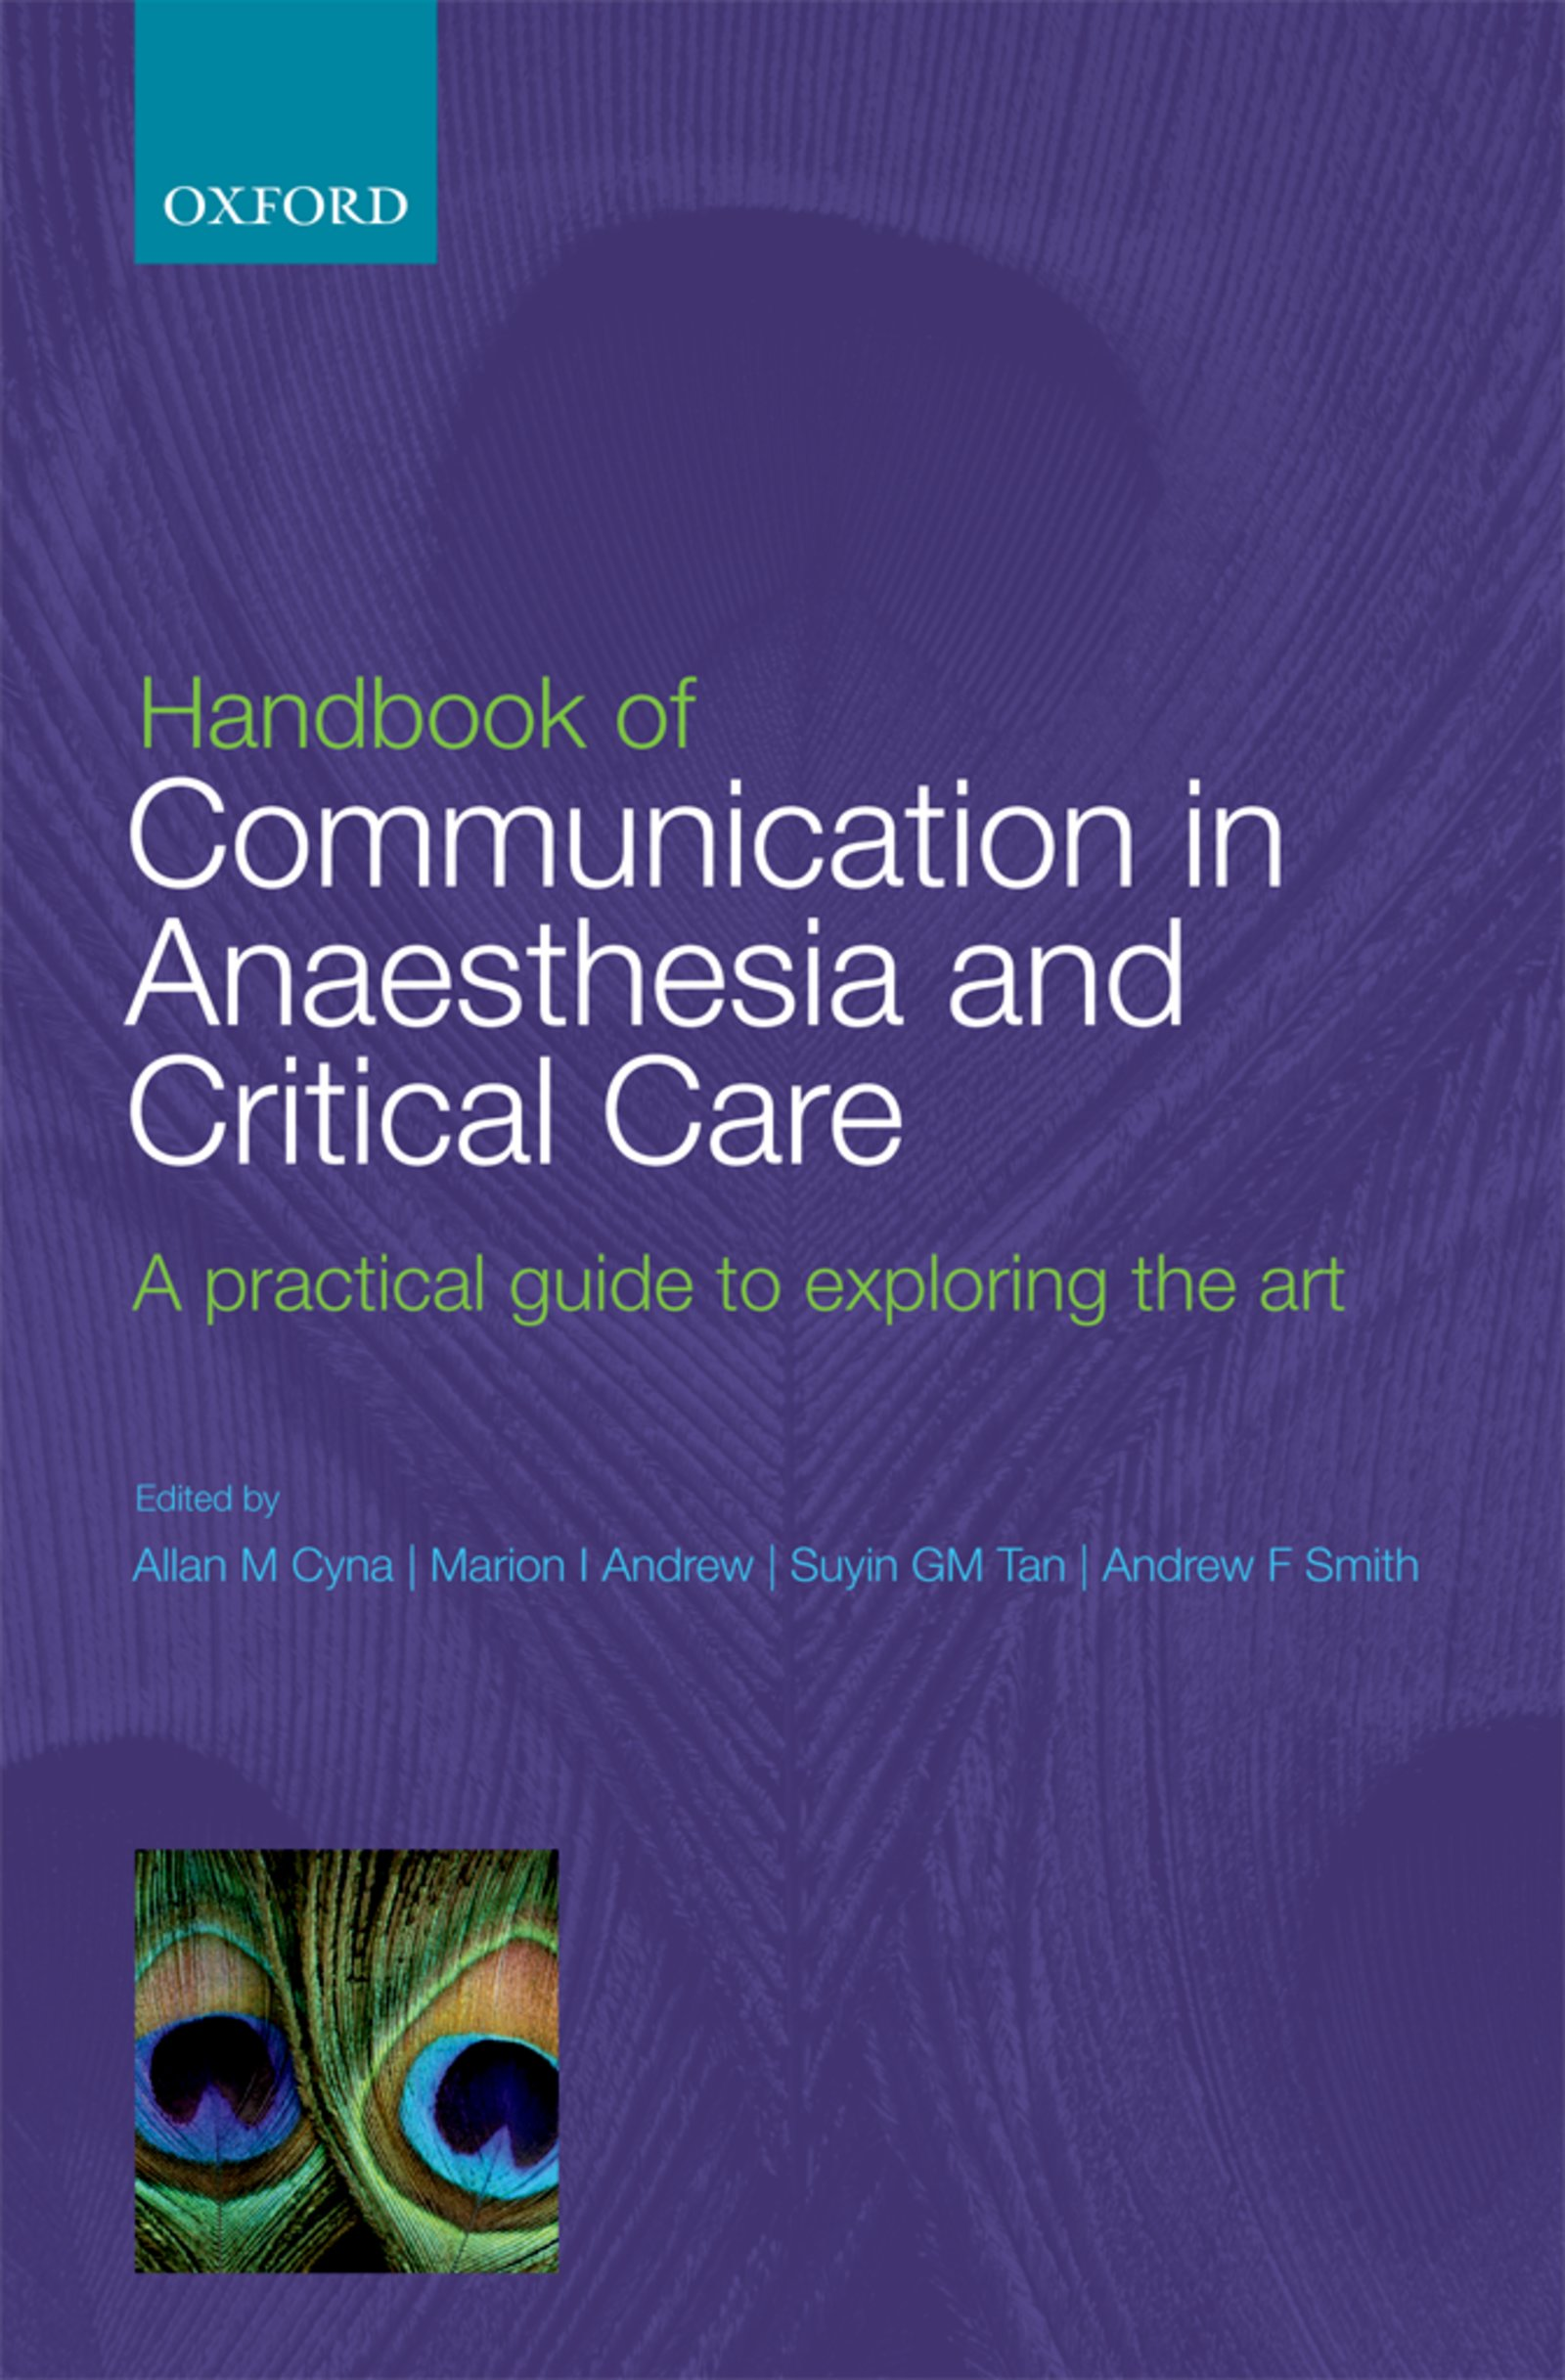 Handbook of Communication in Anaesthesia & Critical Care – A Practical Guide to Exploring the Art - Oxford Scholarship Online